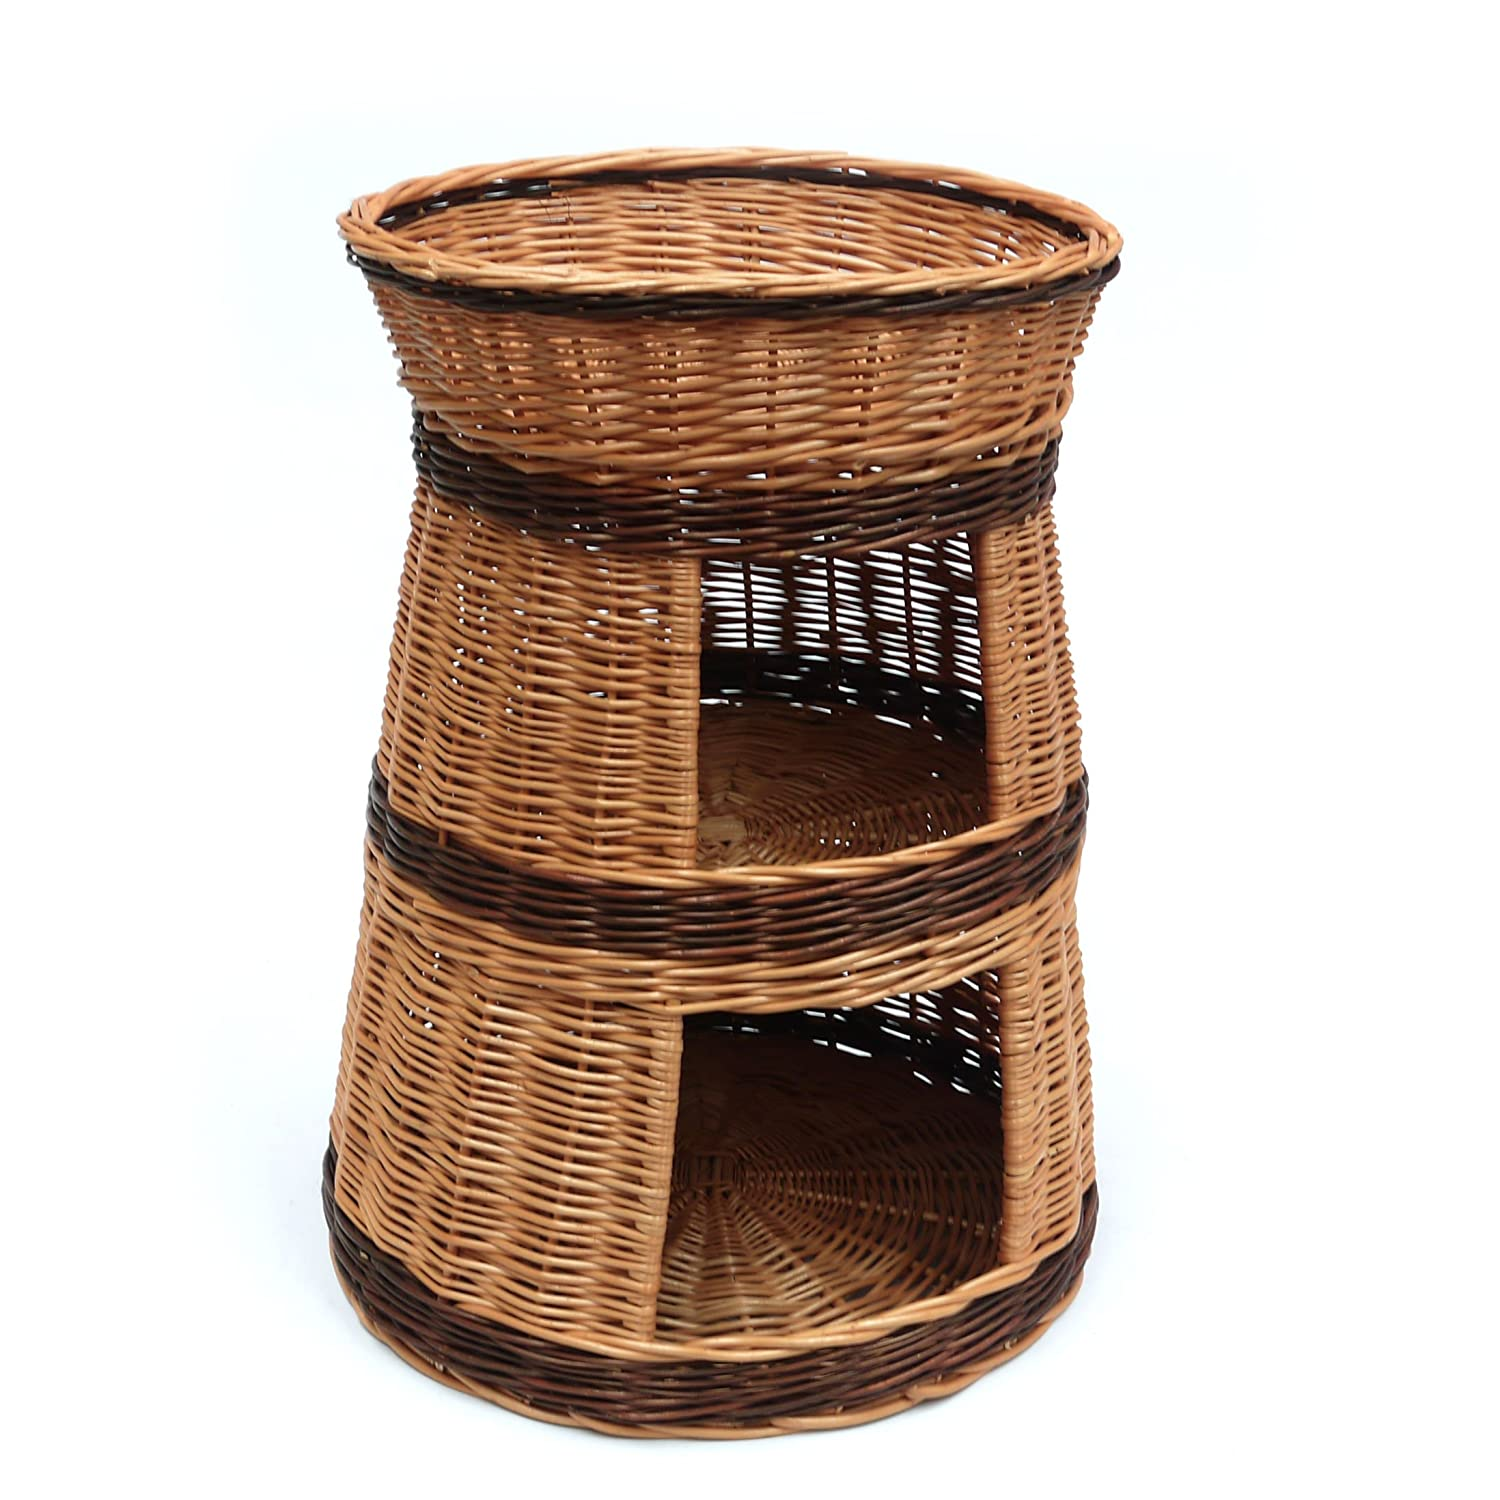 Wicker cat kitten bed 3 tier house